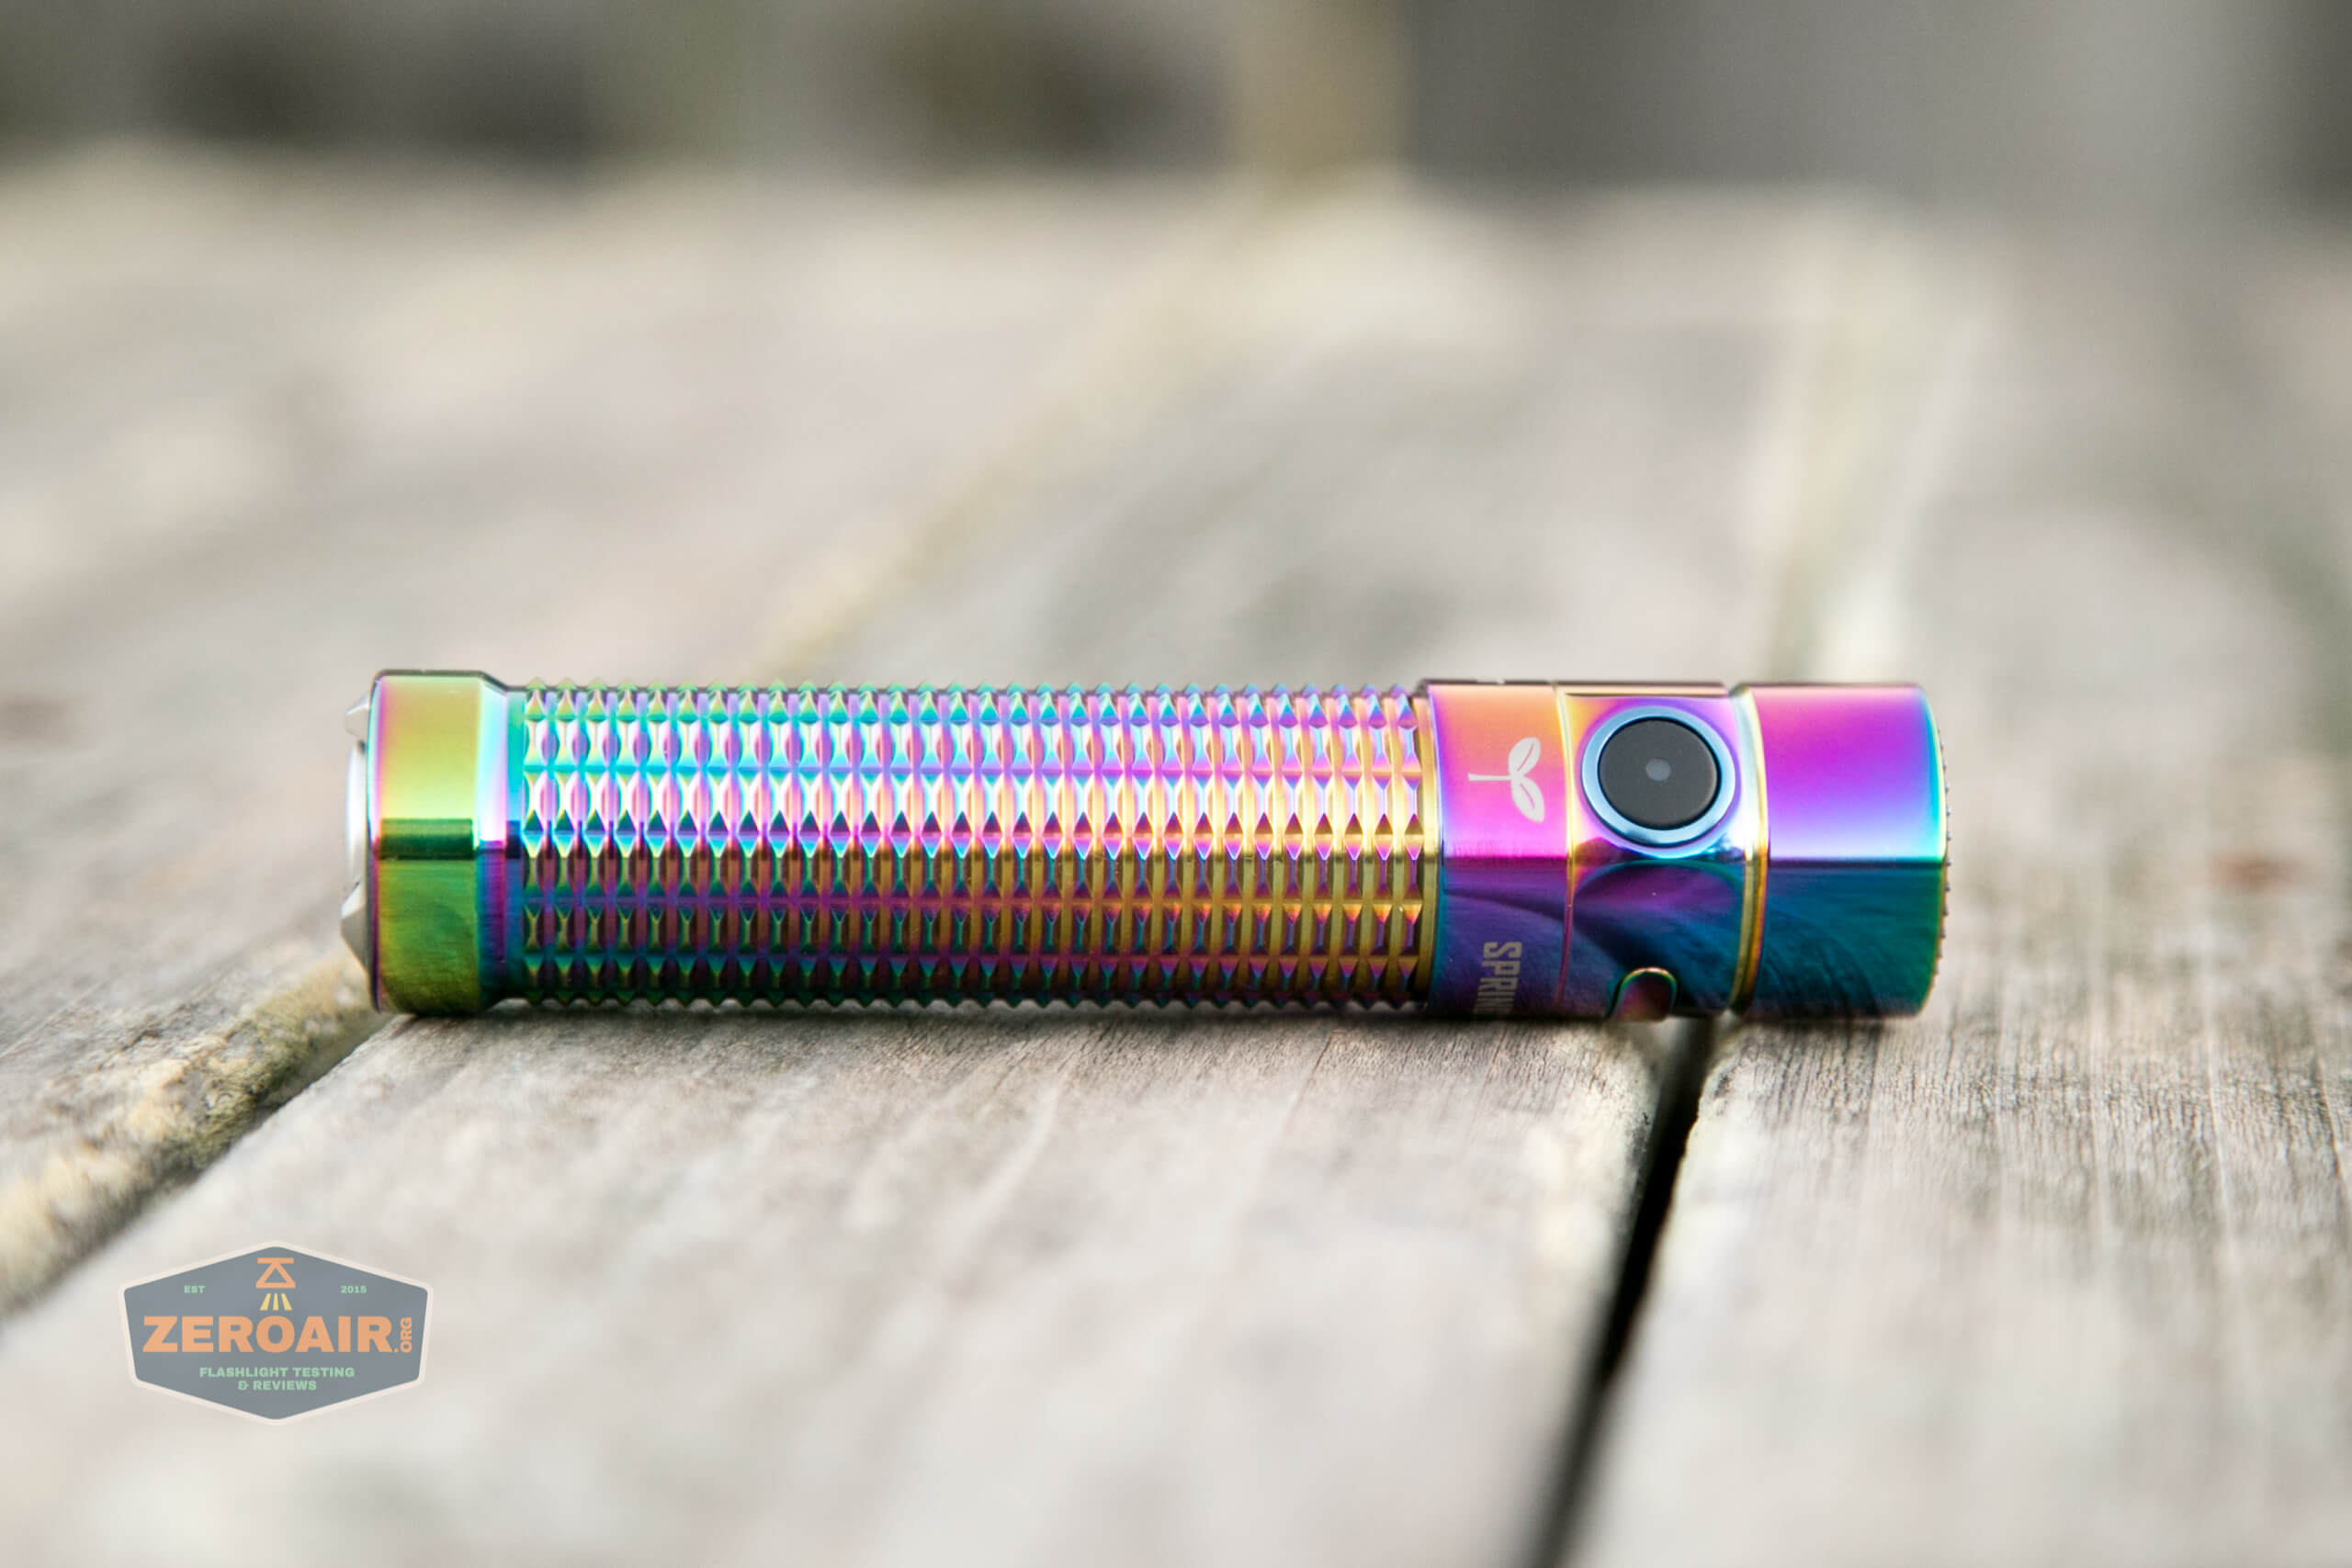 olight warrior mini rainbow spring 2 led flashlight on side